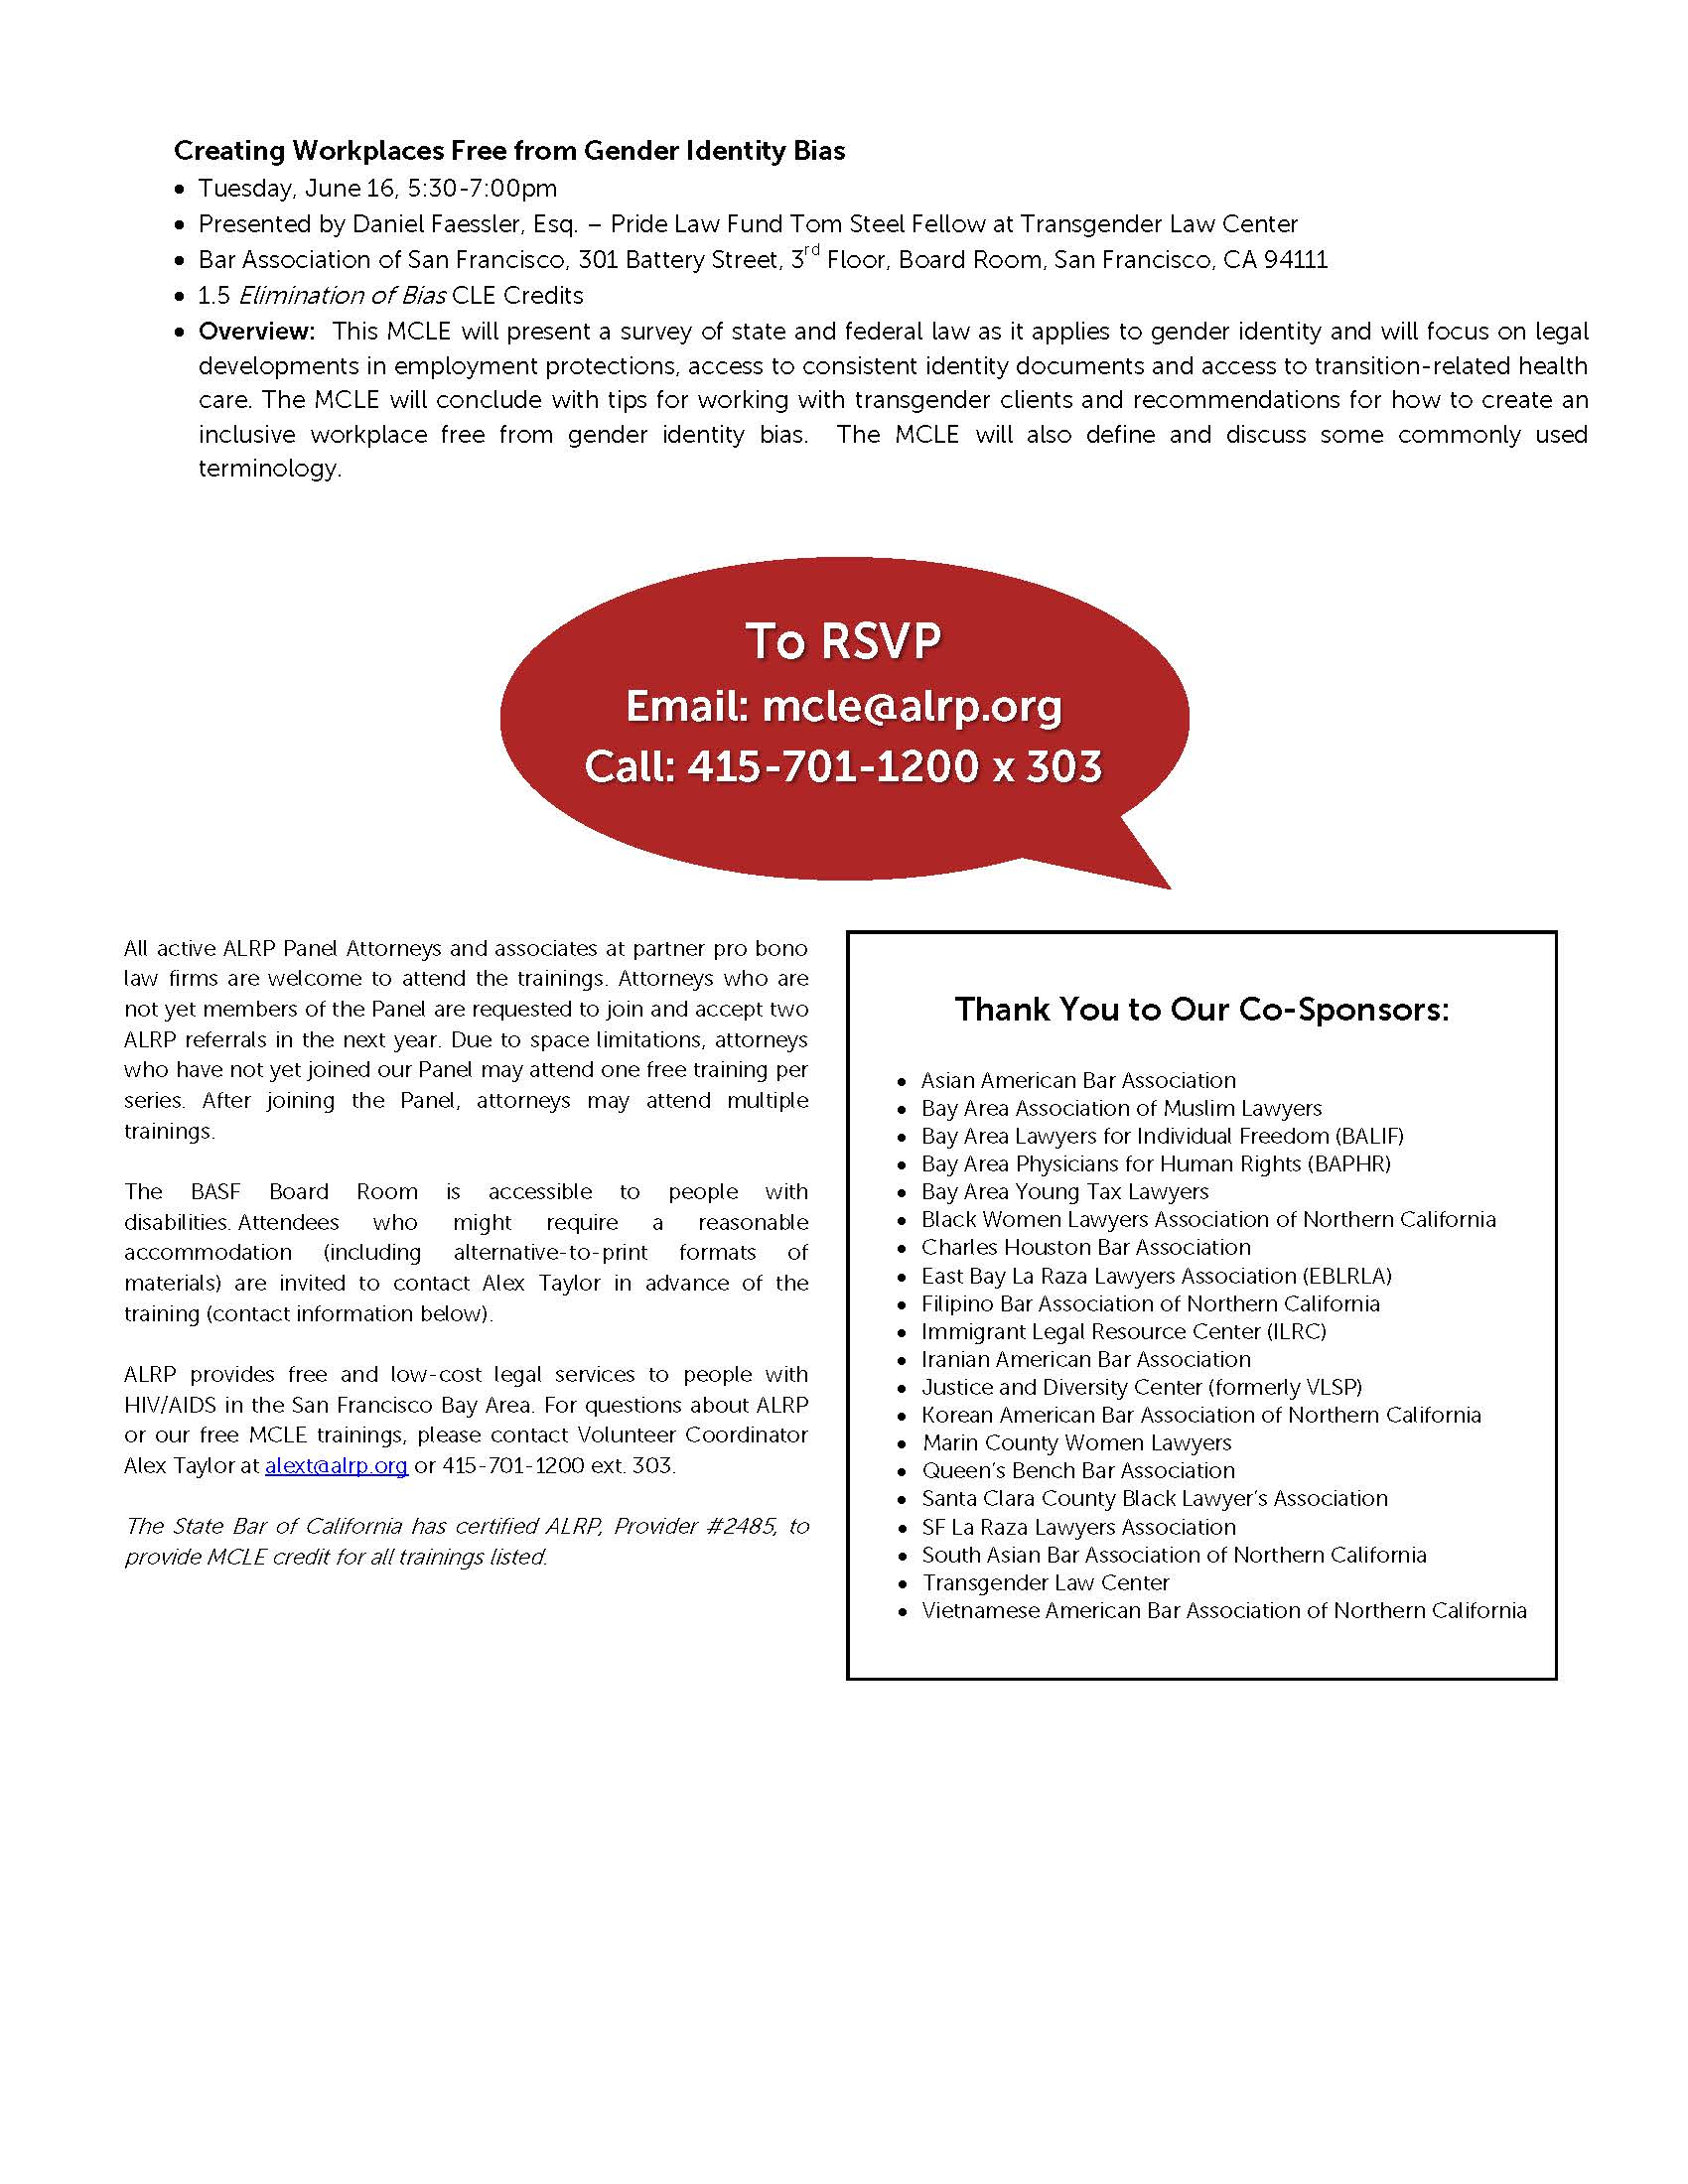 ALRP Free Spring 2015 MCLE Trainings Flyer_Page_2